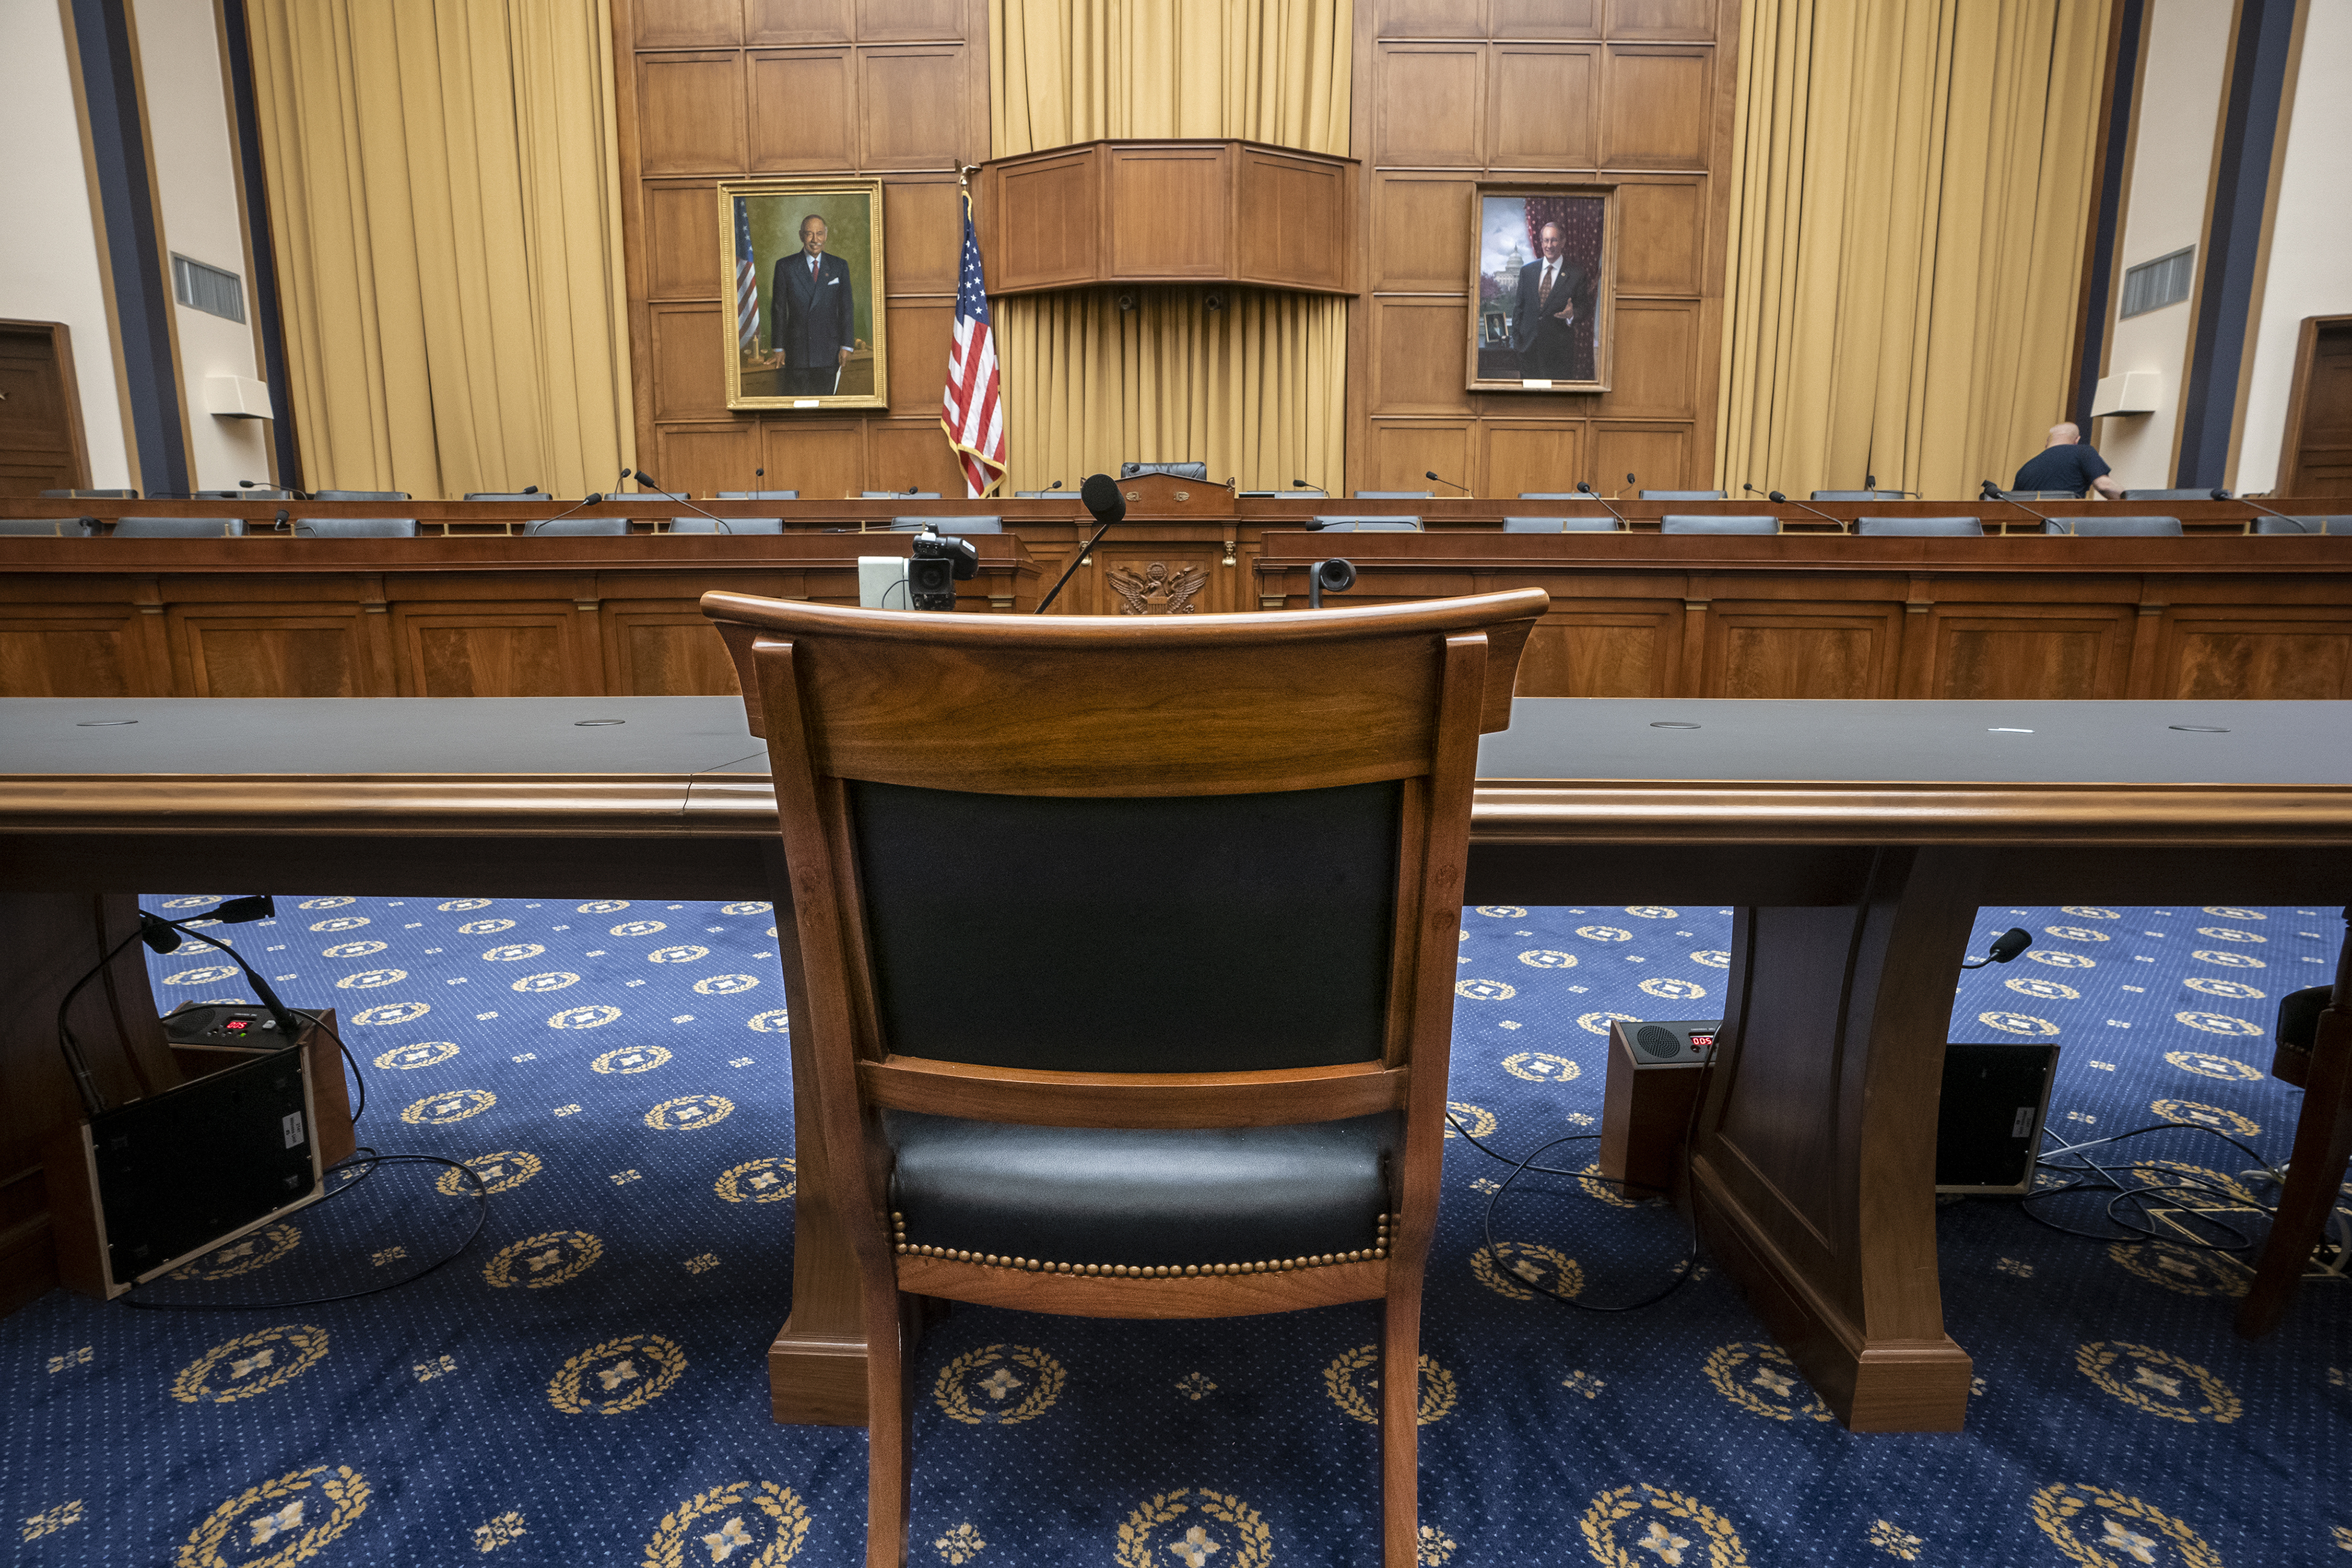 The House Judiciary Committee witness chair will be without its witness this morning, Attorney General William Barr, who informed the Democrat-controlled panel he will skip a scheduled hearing on special counsel Robert Mueller's report, May 2, 2019.